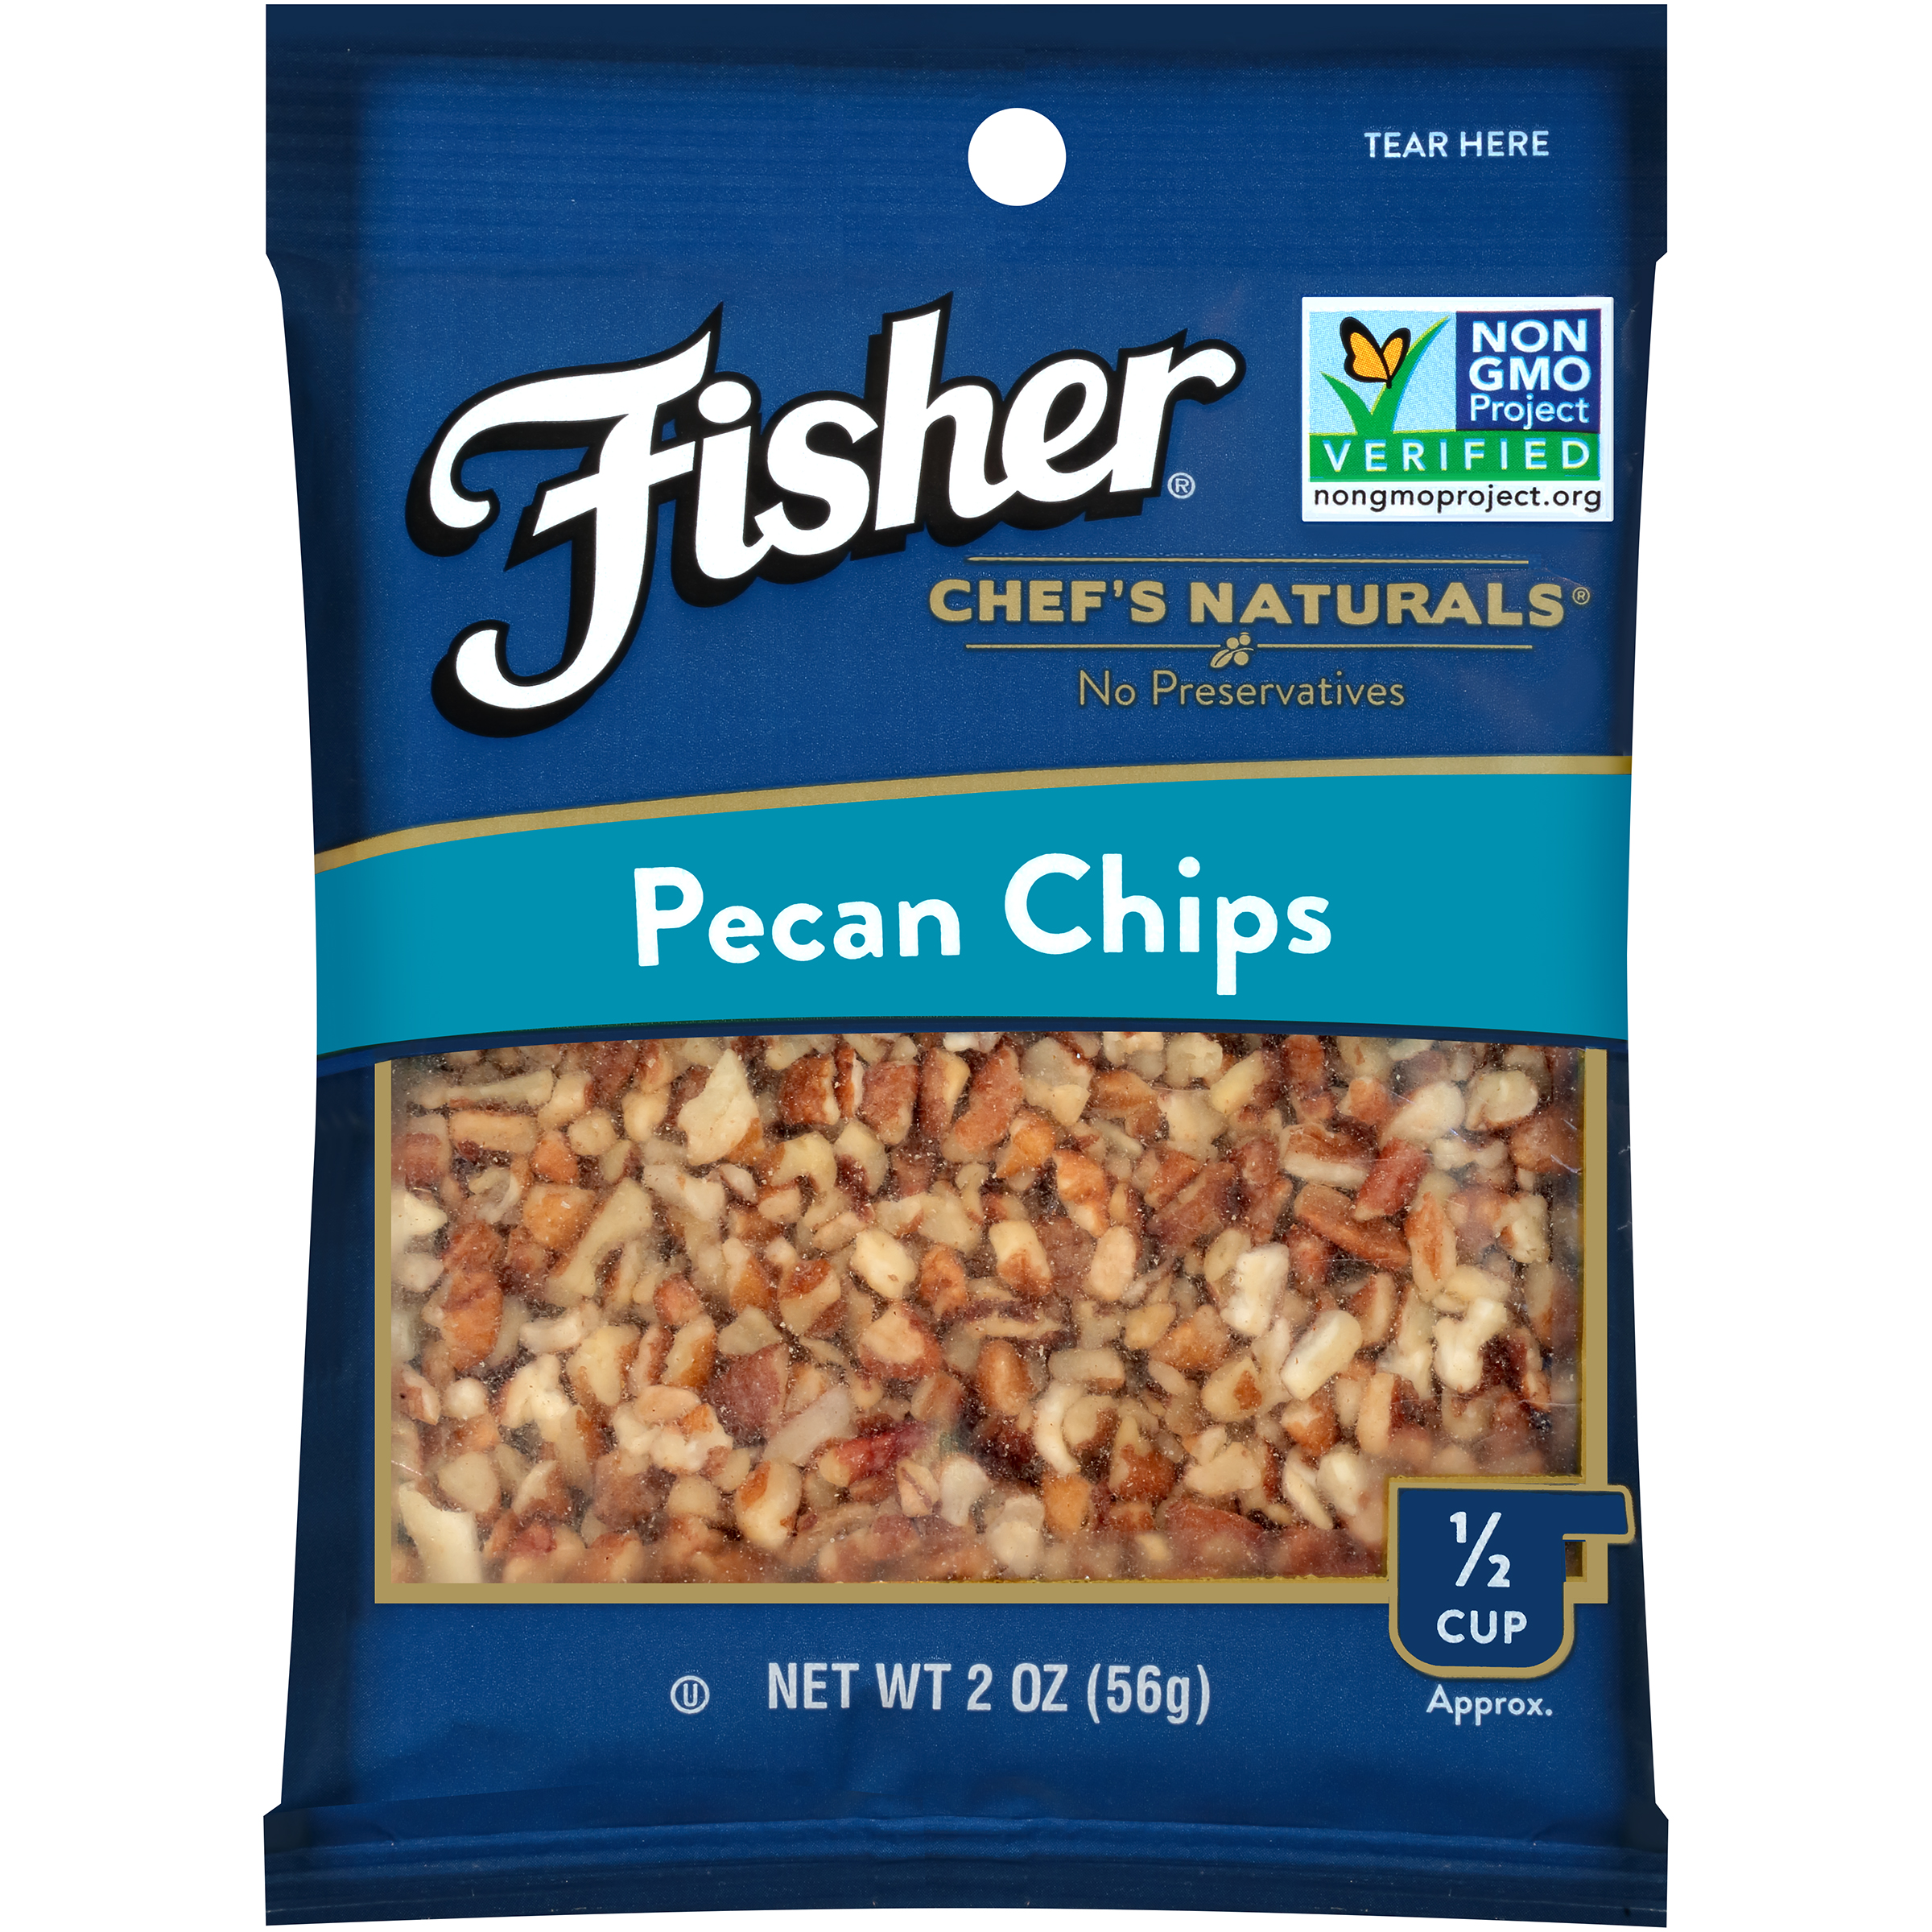 Fisher Chef's Naturals Pecan Chips, 2 oz by John B. Sanfilippo & Son, Inc.